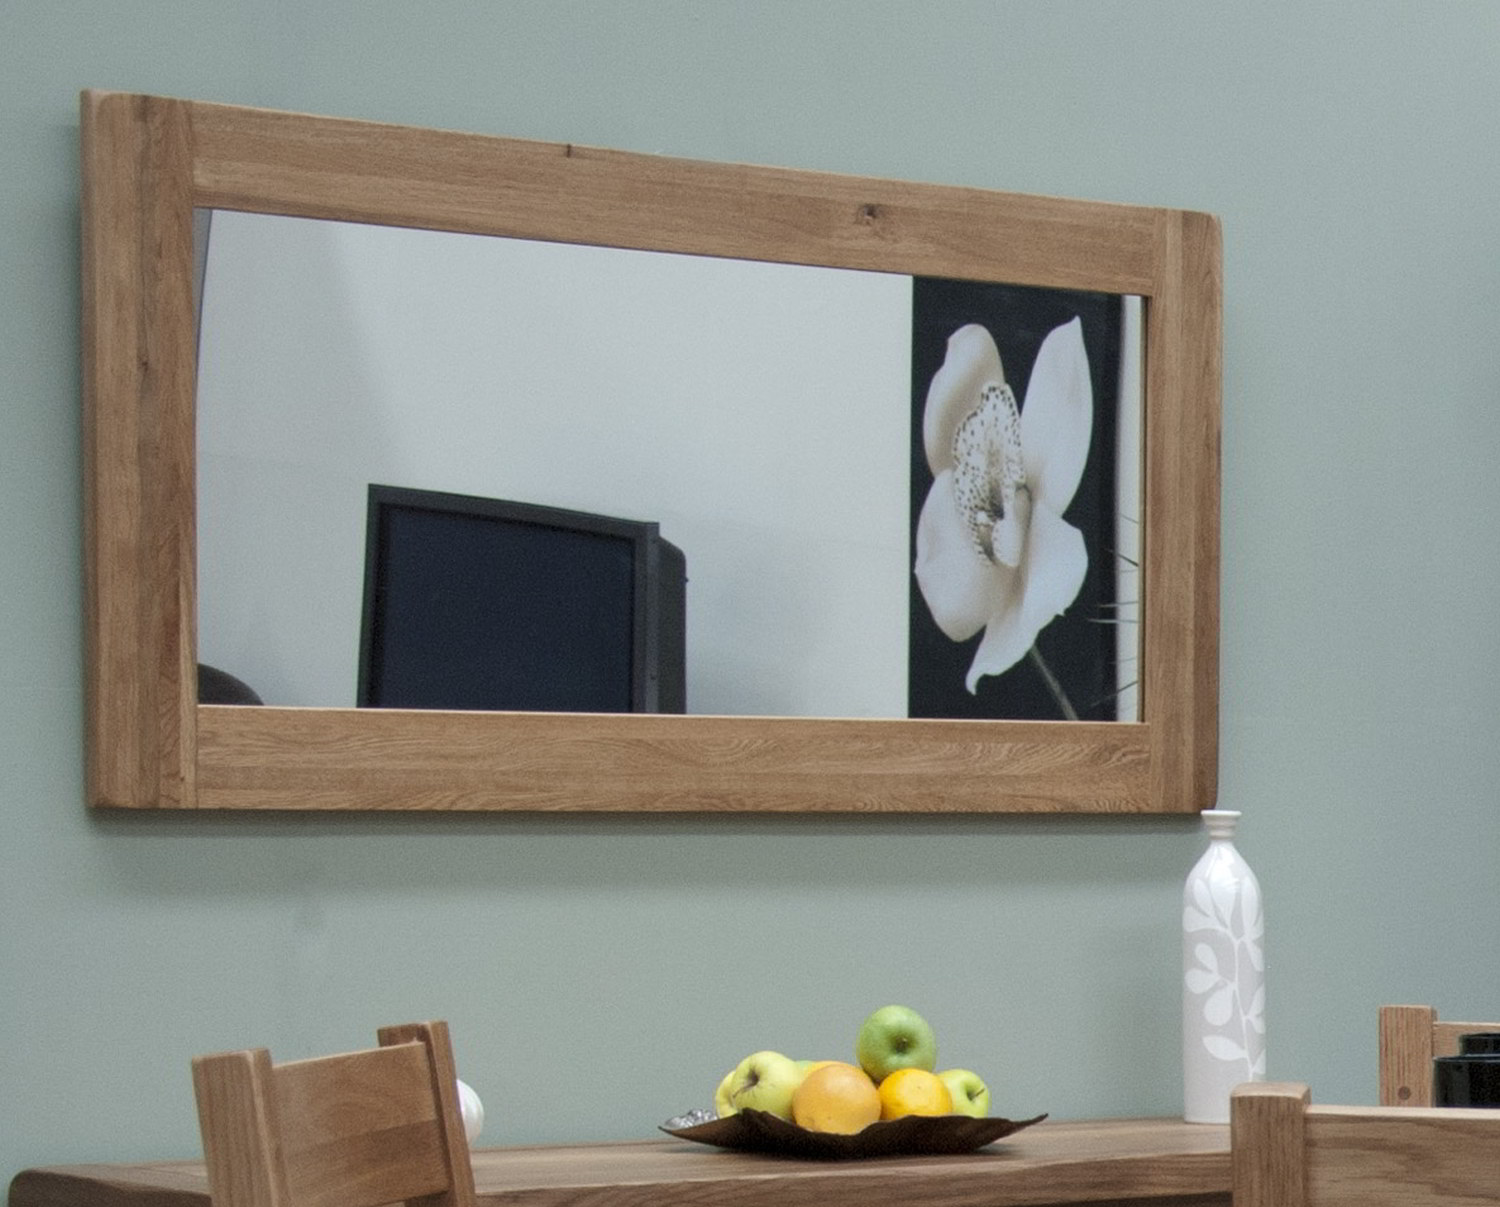 Tilson Solid Rustic Oak Hallway Living Room Furniture Large Wall Mirror